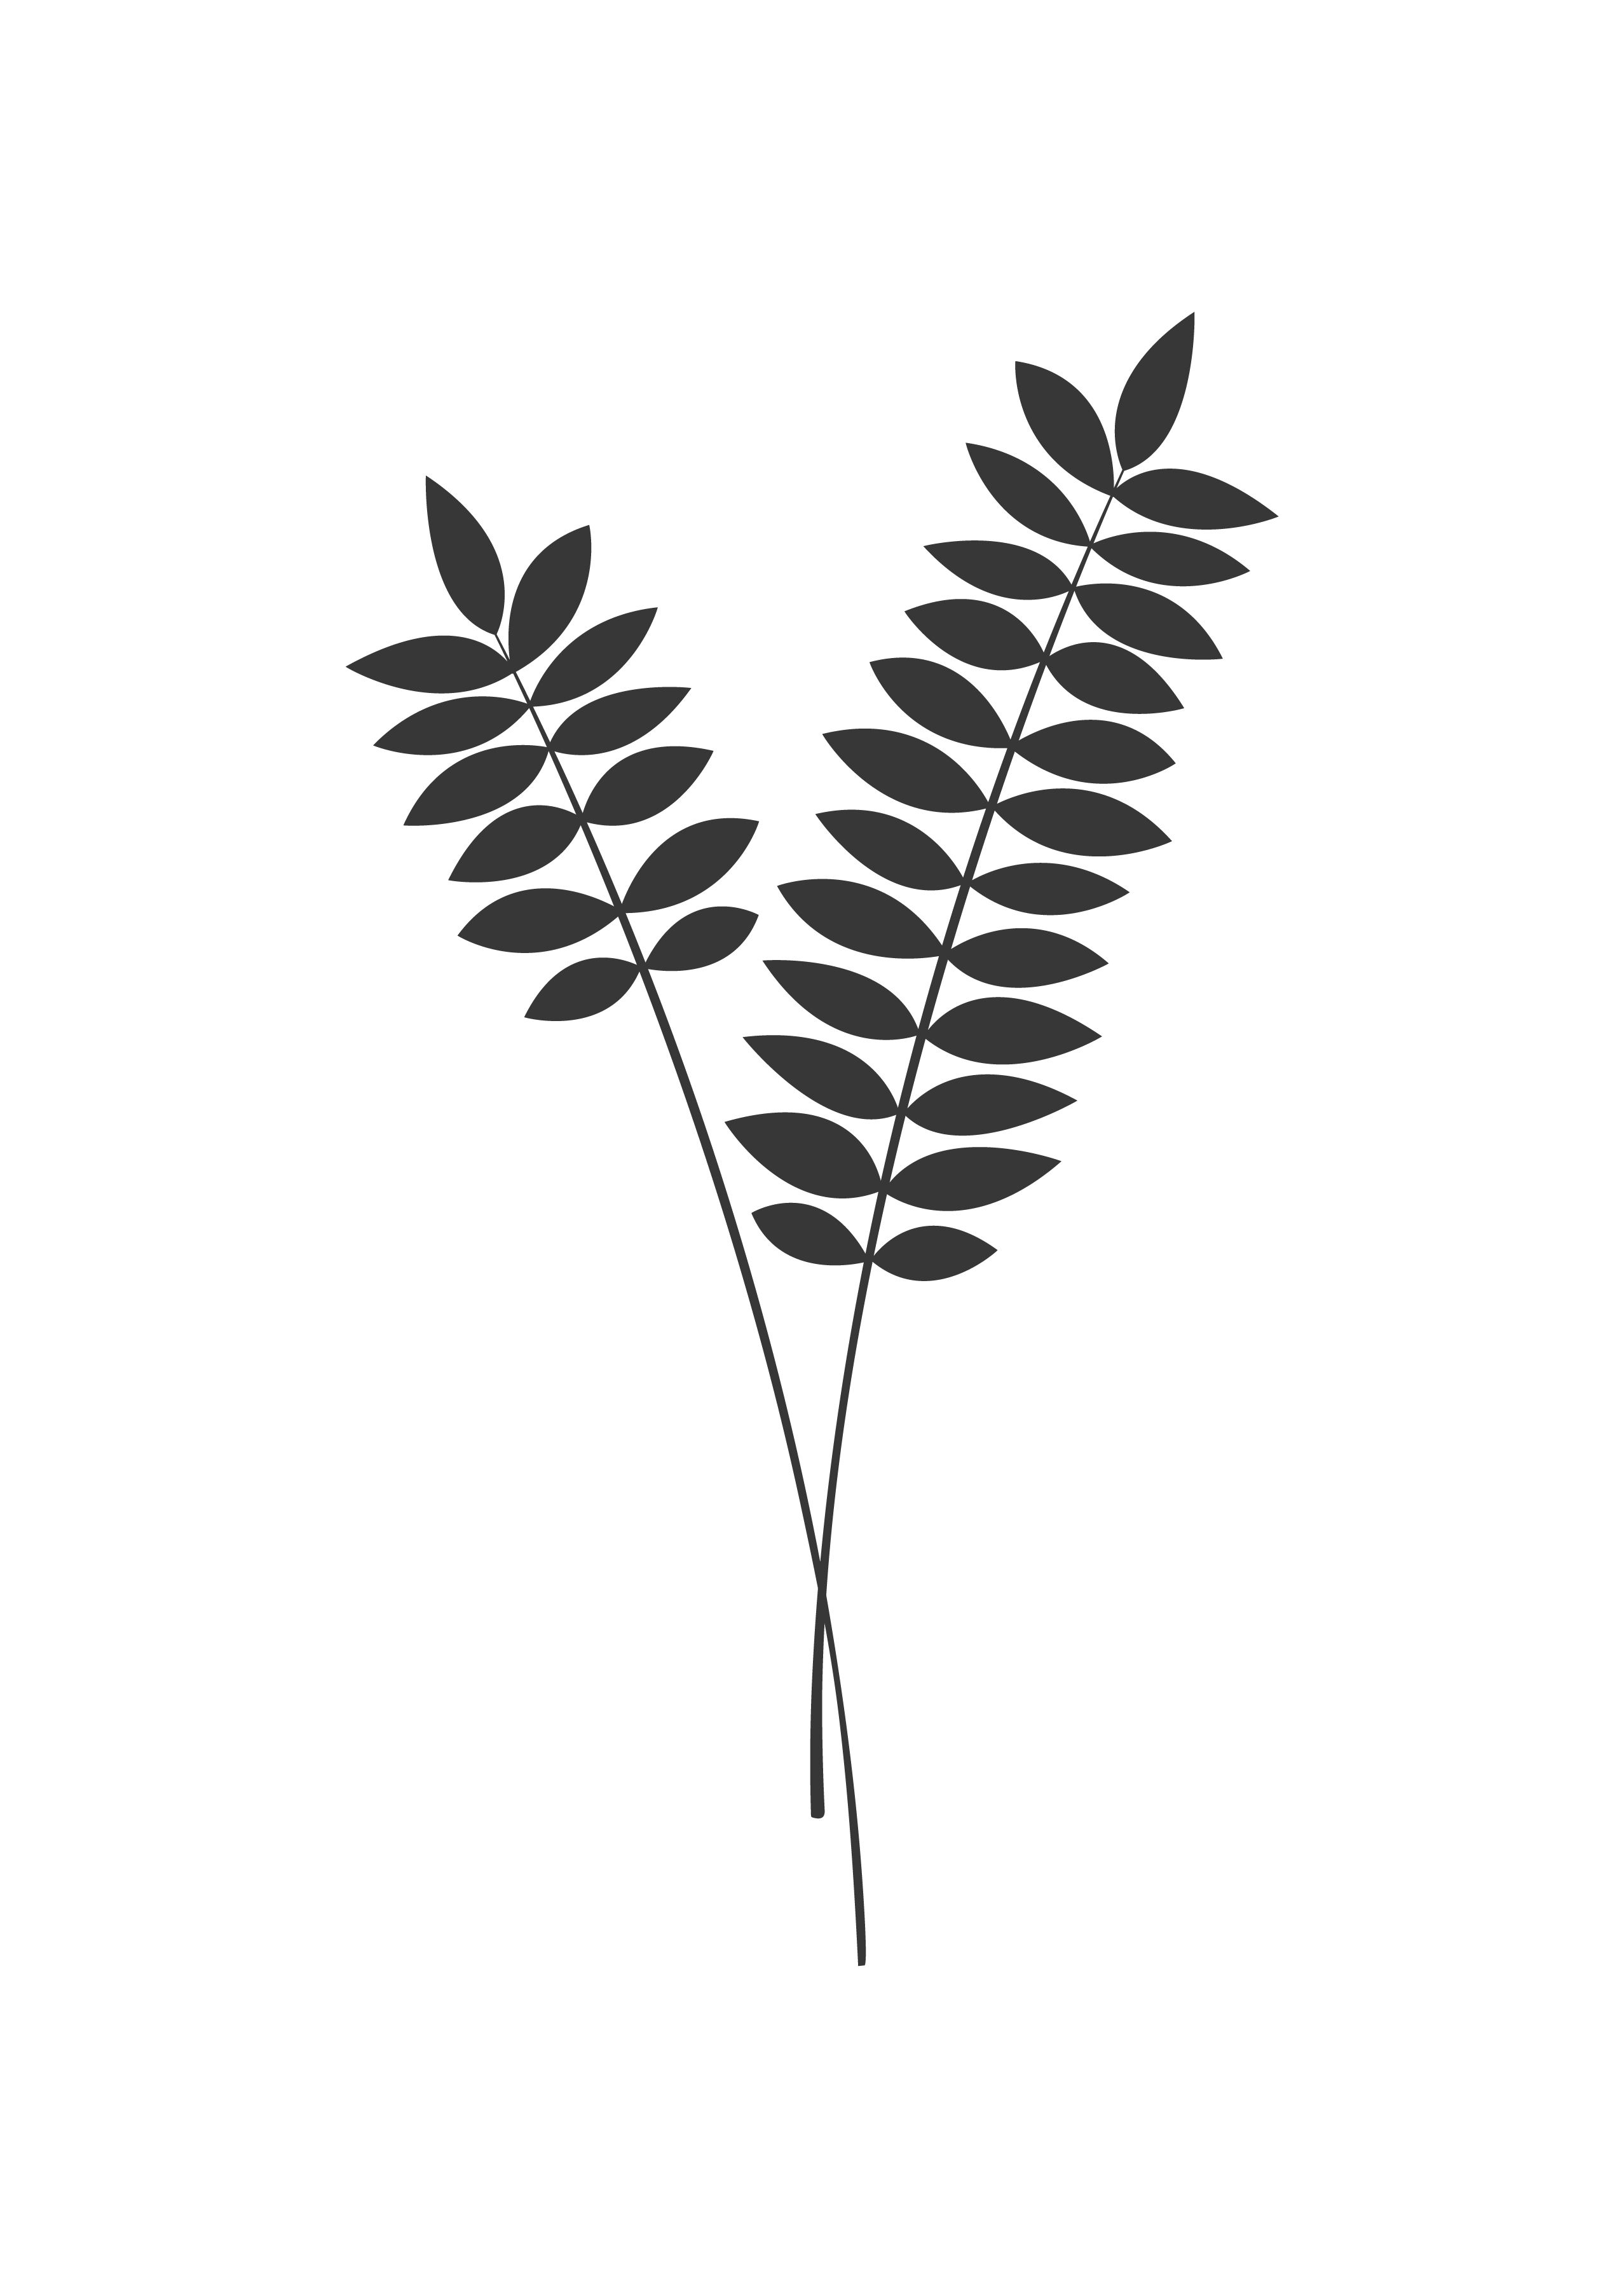 Wall Art Print With Leaves In Black And White Printable Poster Scandinavian Design